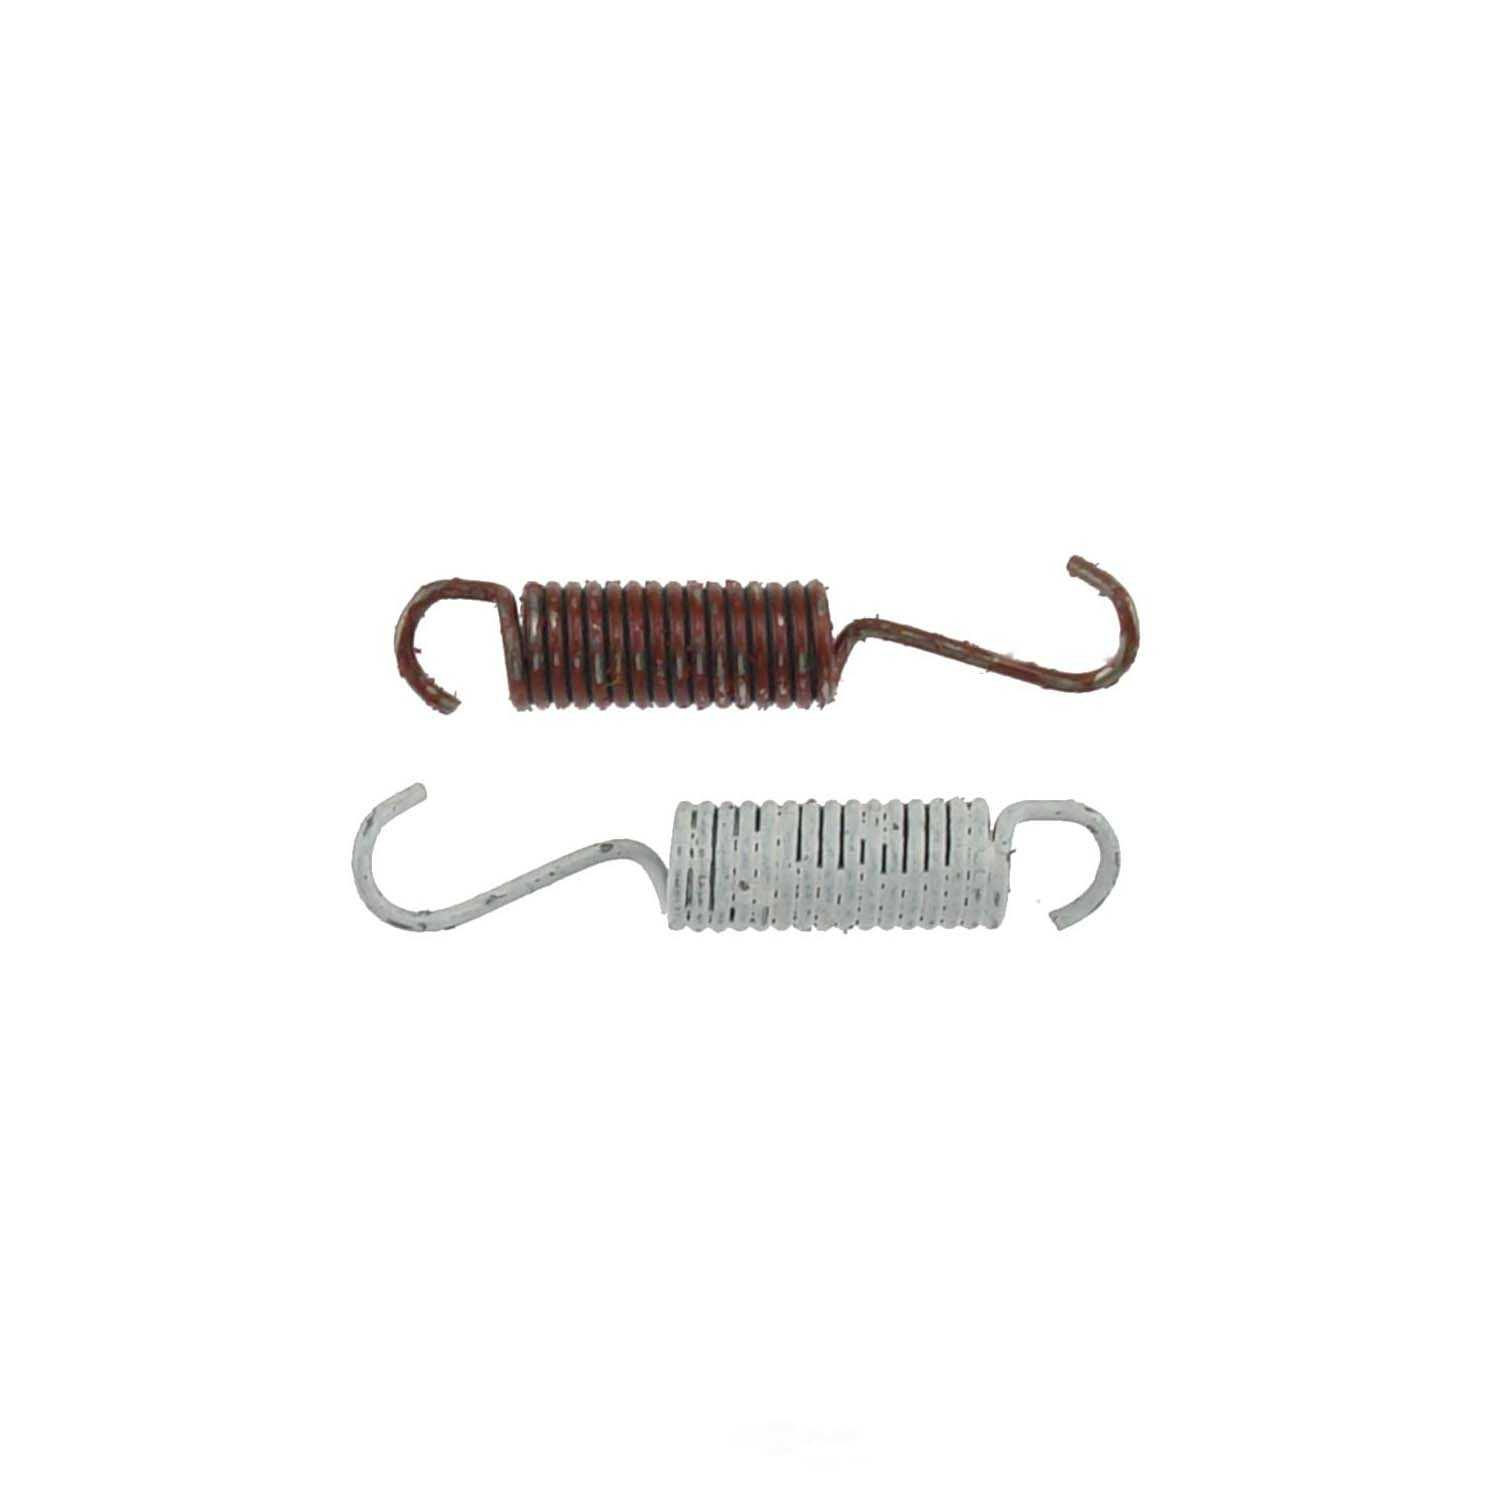 CARLSON QUALITY BRAKE PARTS - Rear Adjust Screw Spring - CRL H450